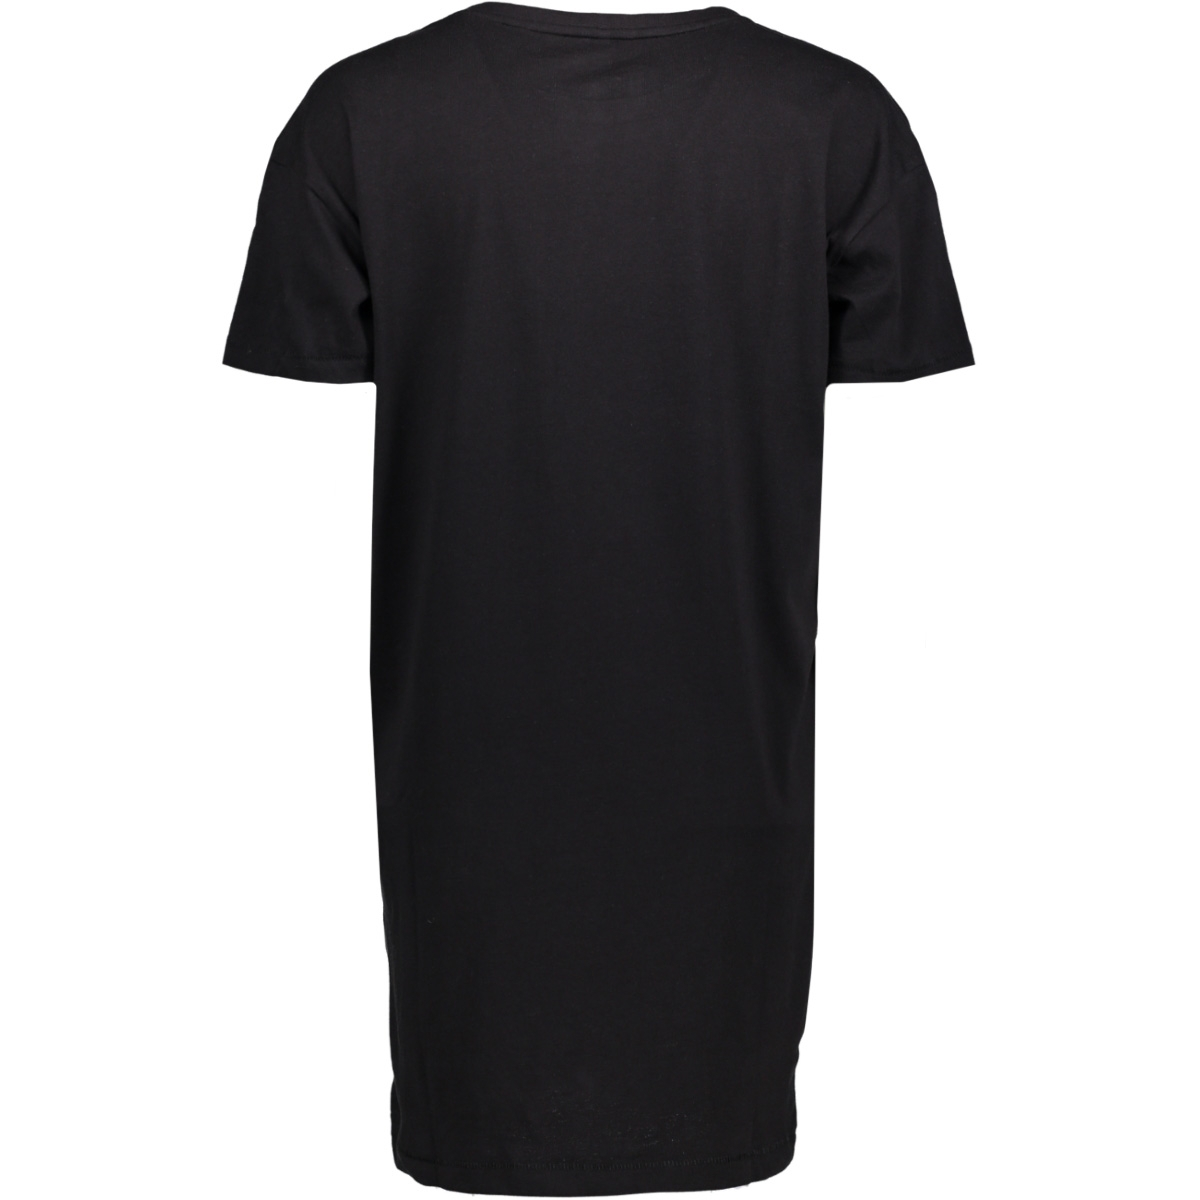 onlemma s/s simple/cool long top bo 15150949 only t-shirt black/simple2